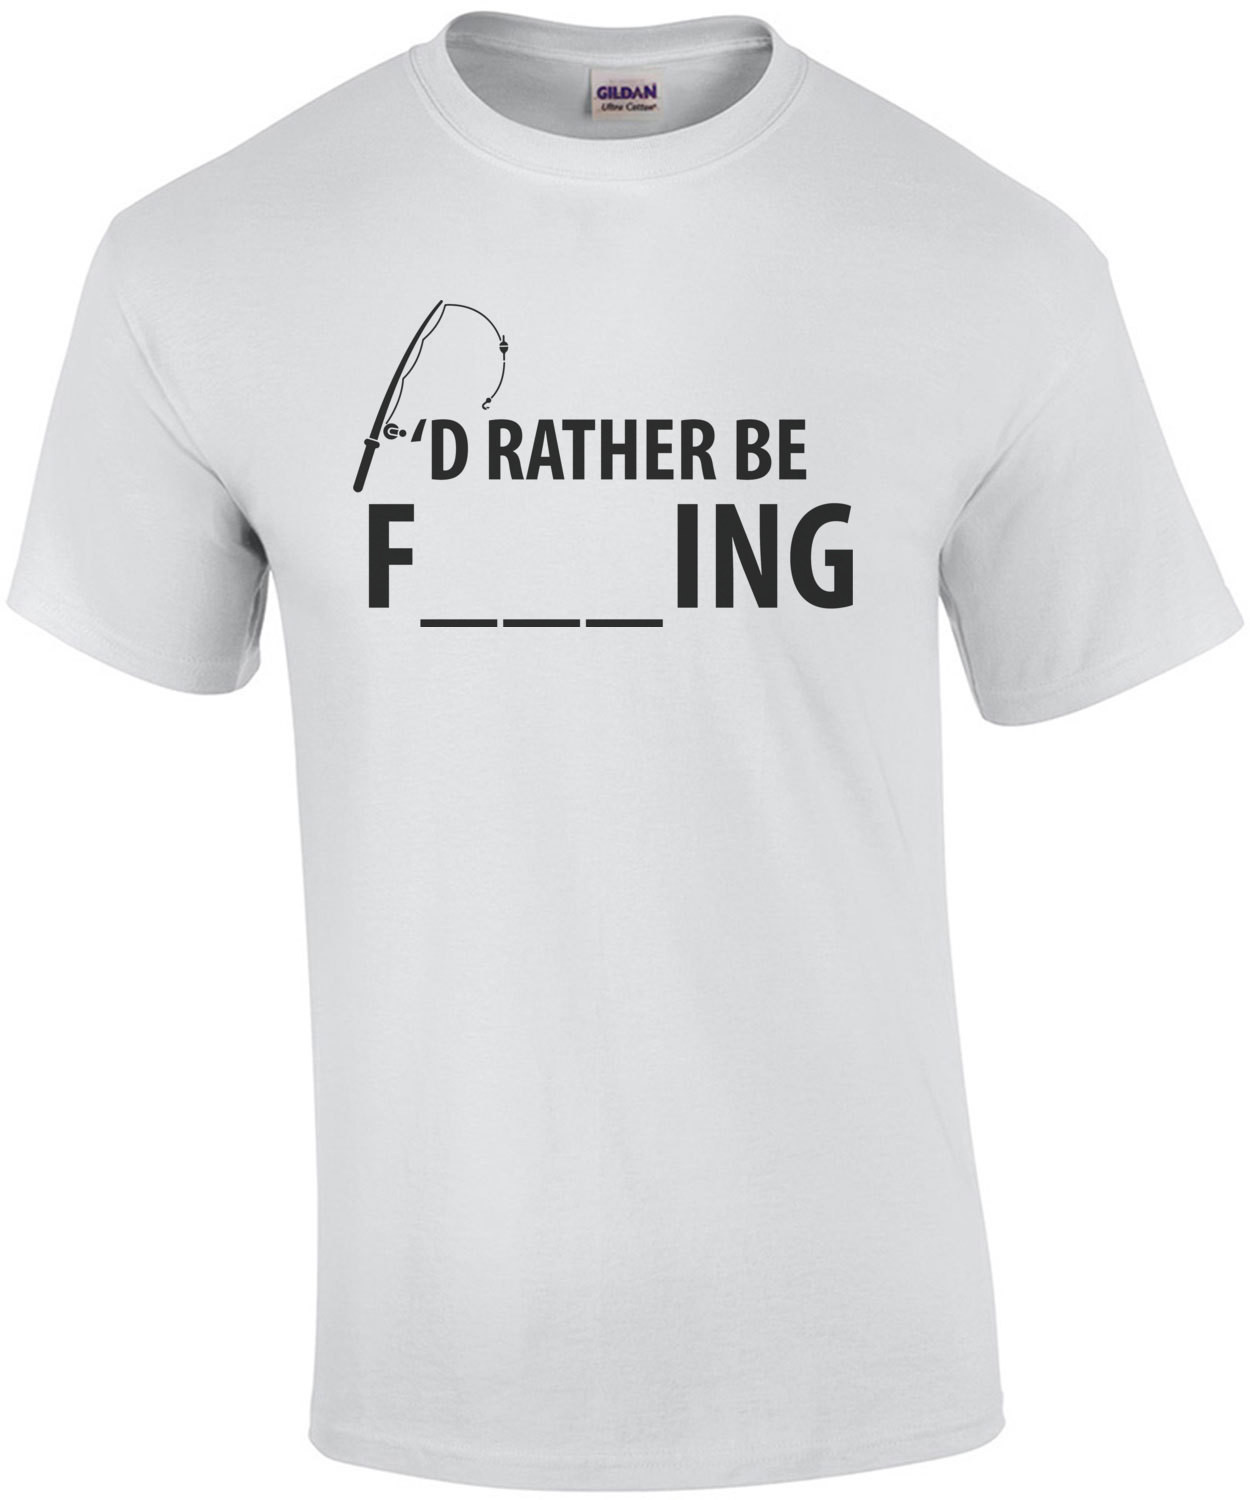 I'd rather be fishing - funny t-shirt